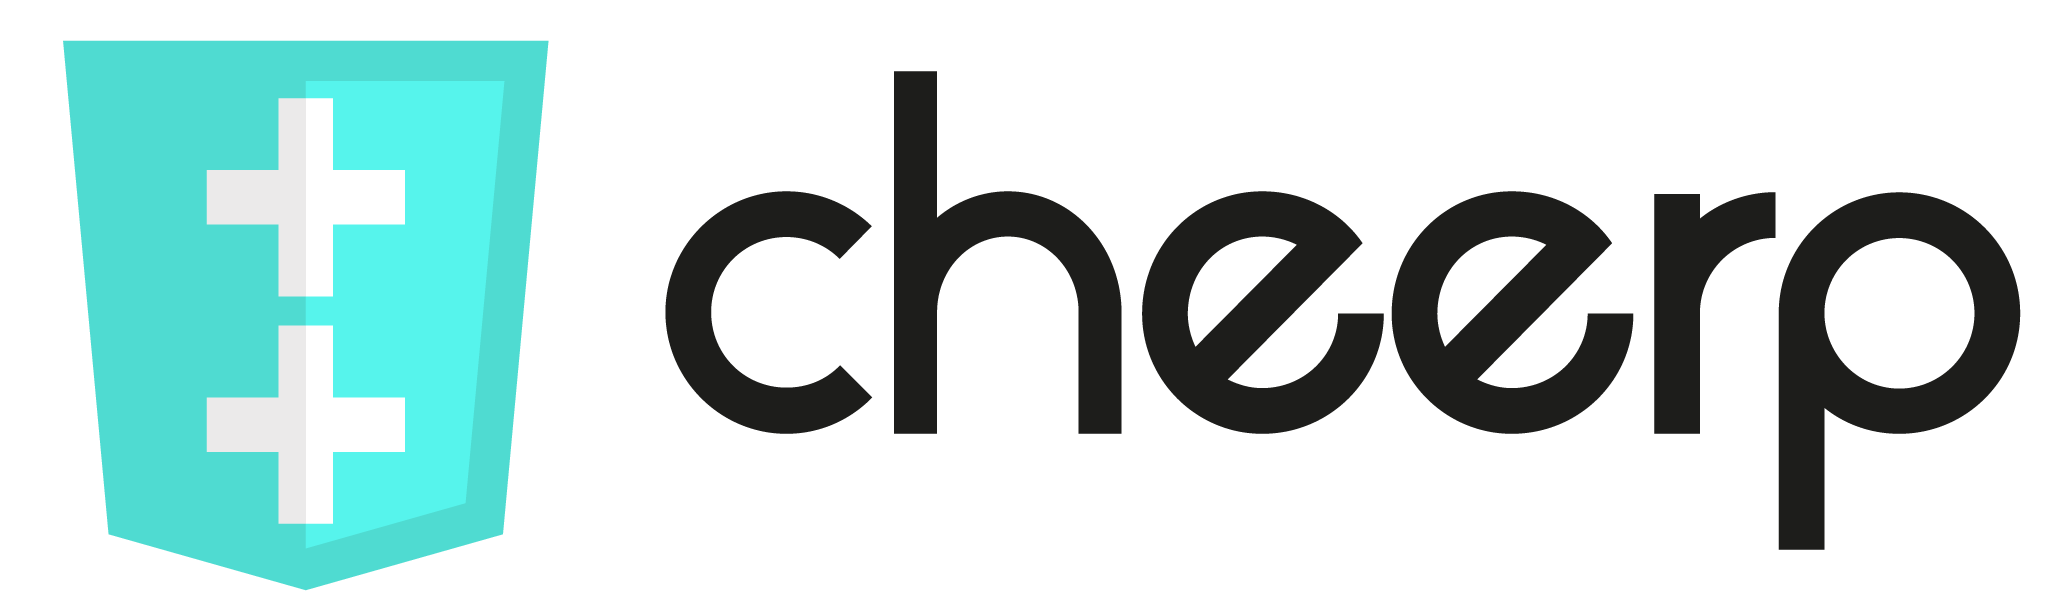 Cheerp 2 0-RC2 released — C++ to WebAssembly compiler with